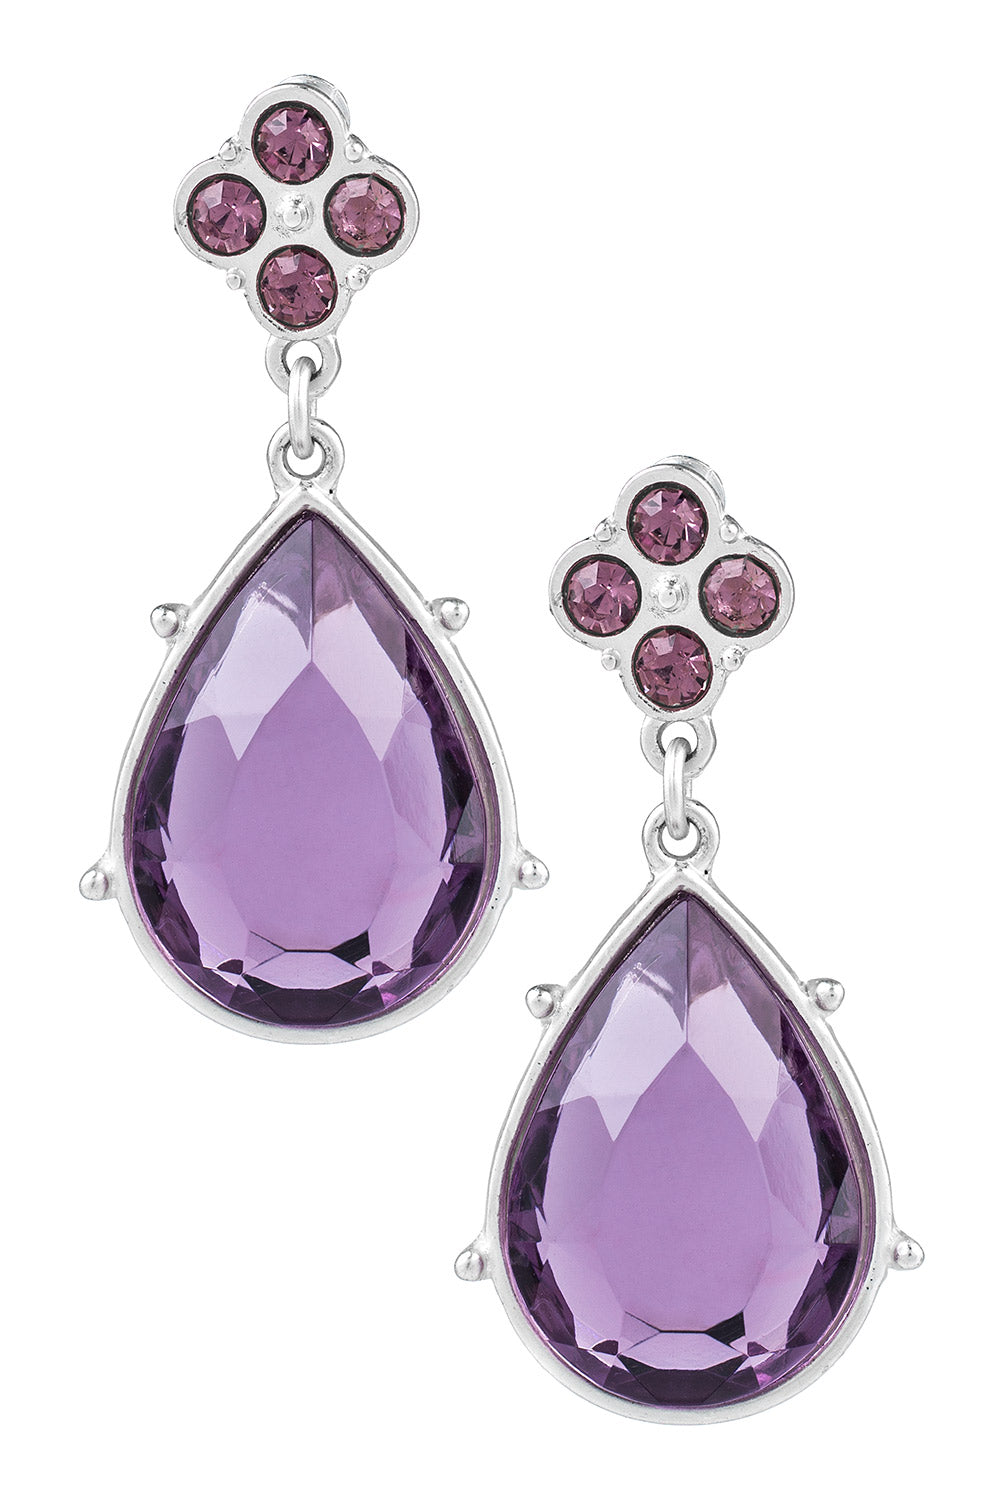 Type 2 Sweet Surrender Earrings in Purple